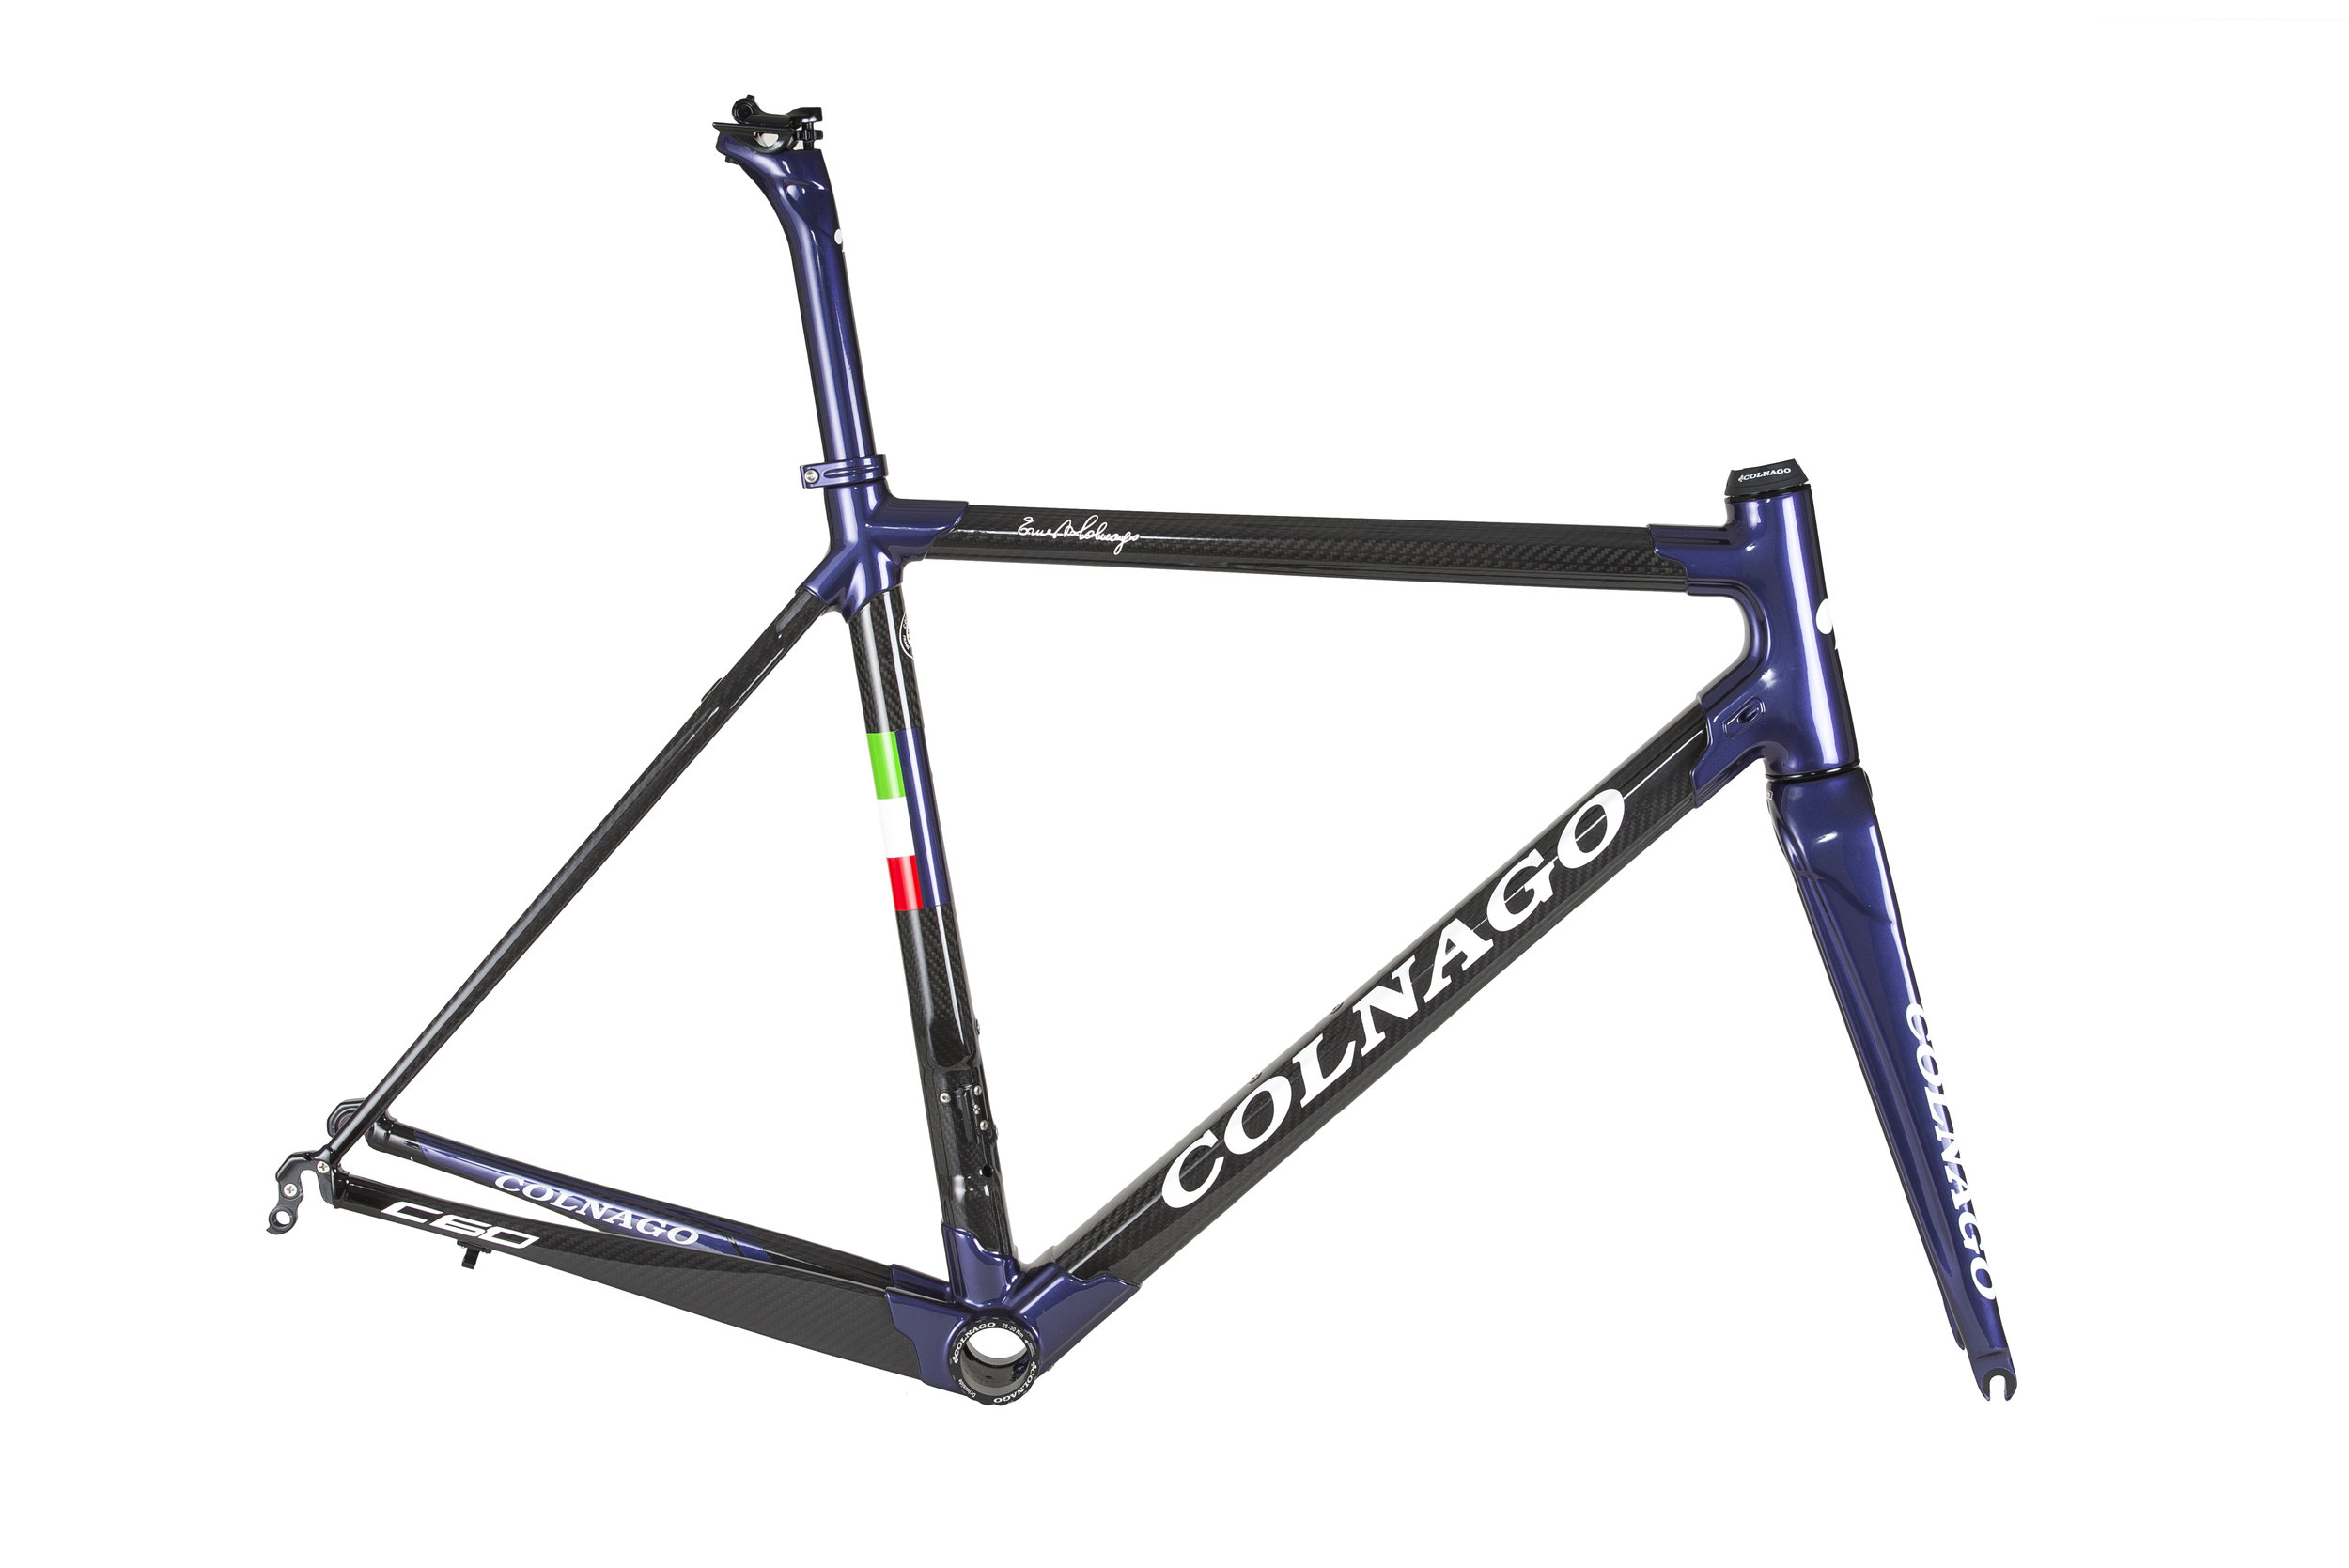 This new PLOD C60 colour was launched at the 2017 Colnago UK Owners Day.  A really classy metallic purple on gloss carbon tubes with gloss white logos.  The Super Domestique price is £4099 including a colour matched seatpost.  We have dual routed frames in 50, 52 and 54 sloping sizes available at the end of October.  Other sizes and drillings are available to order now.